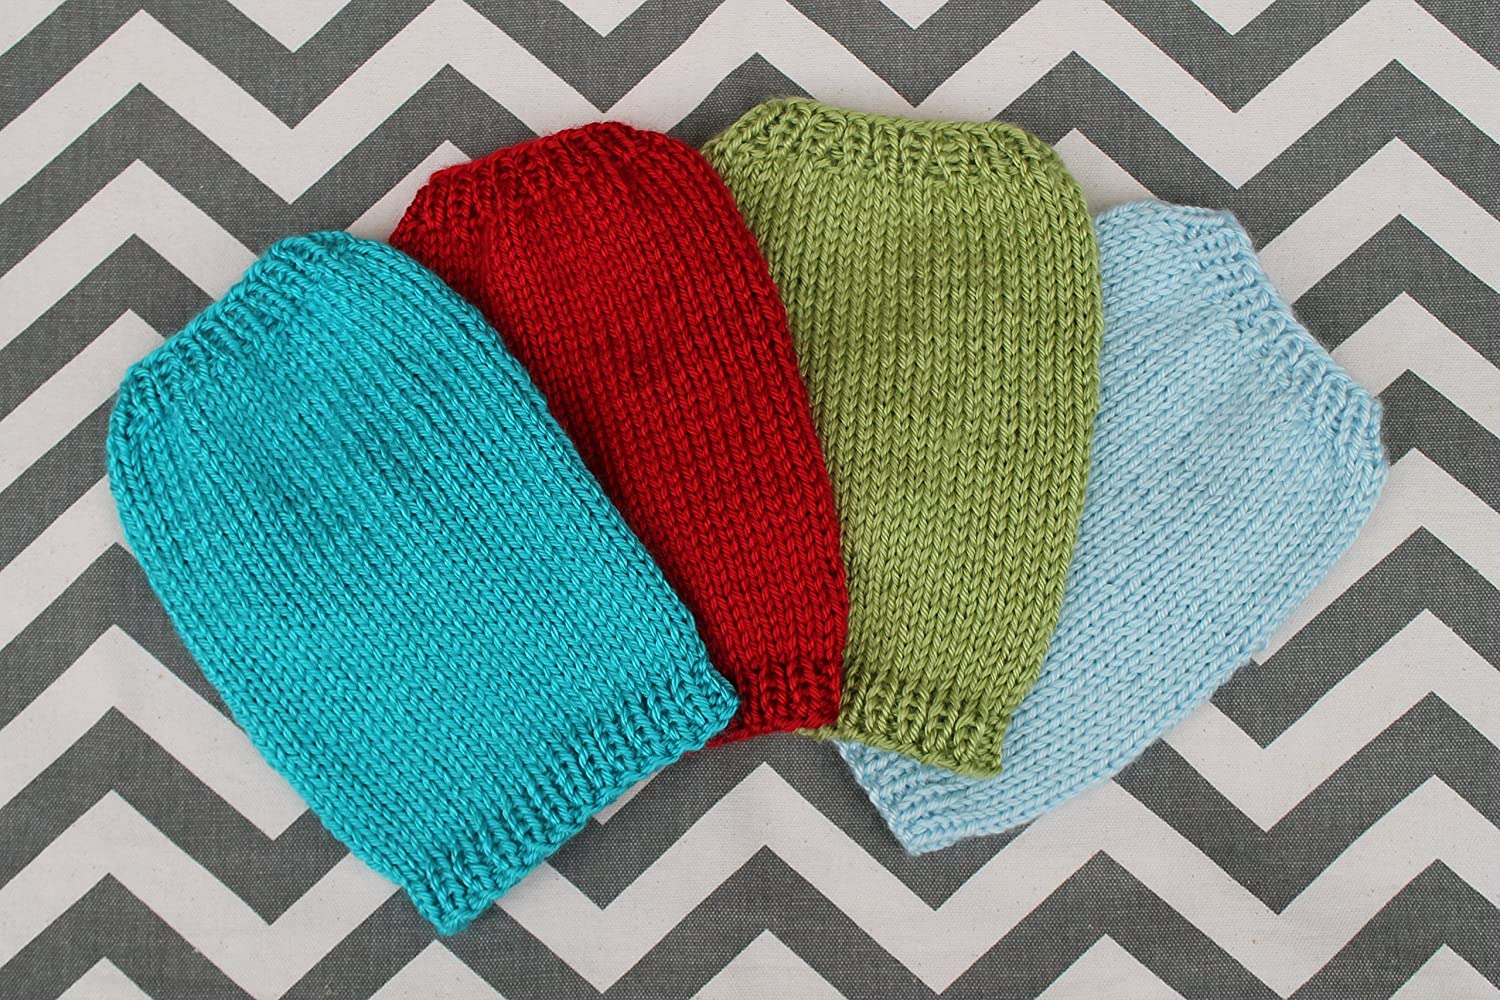 Tiny Hand Knit Dog/Puppy Sweater for 2 Lbs XXXS/XXS for Chihuahua Yorkie Maltese Pomeranian Teacup Puppies in Red Green Light Blue Turquoise